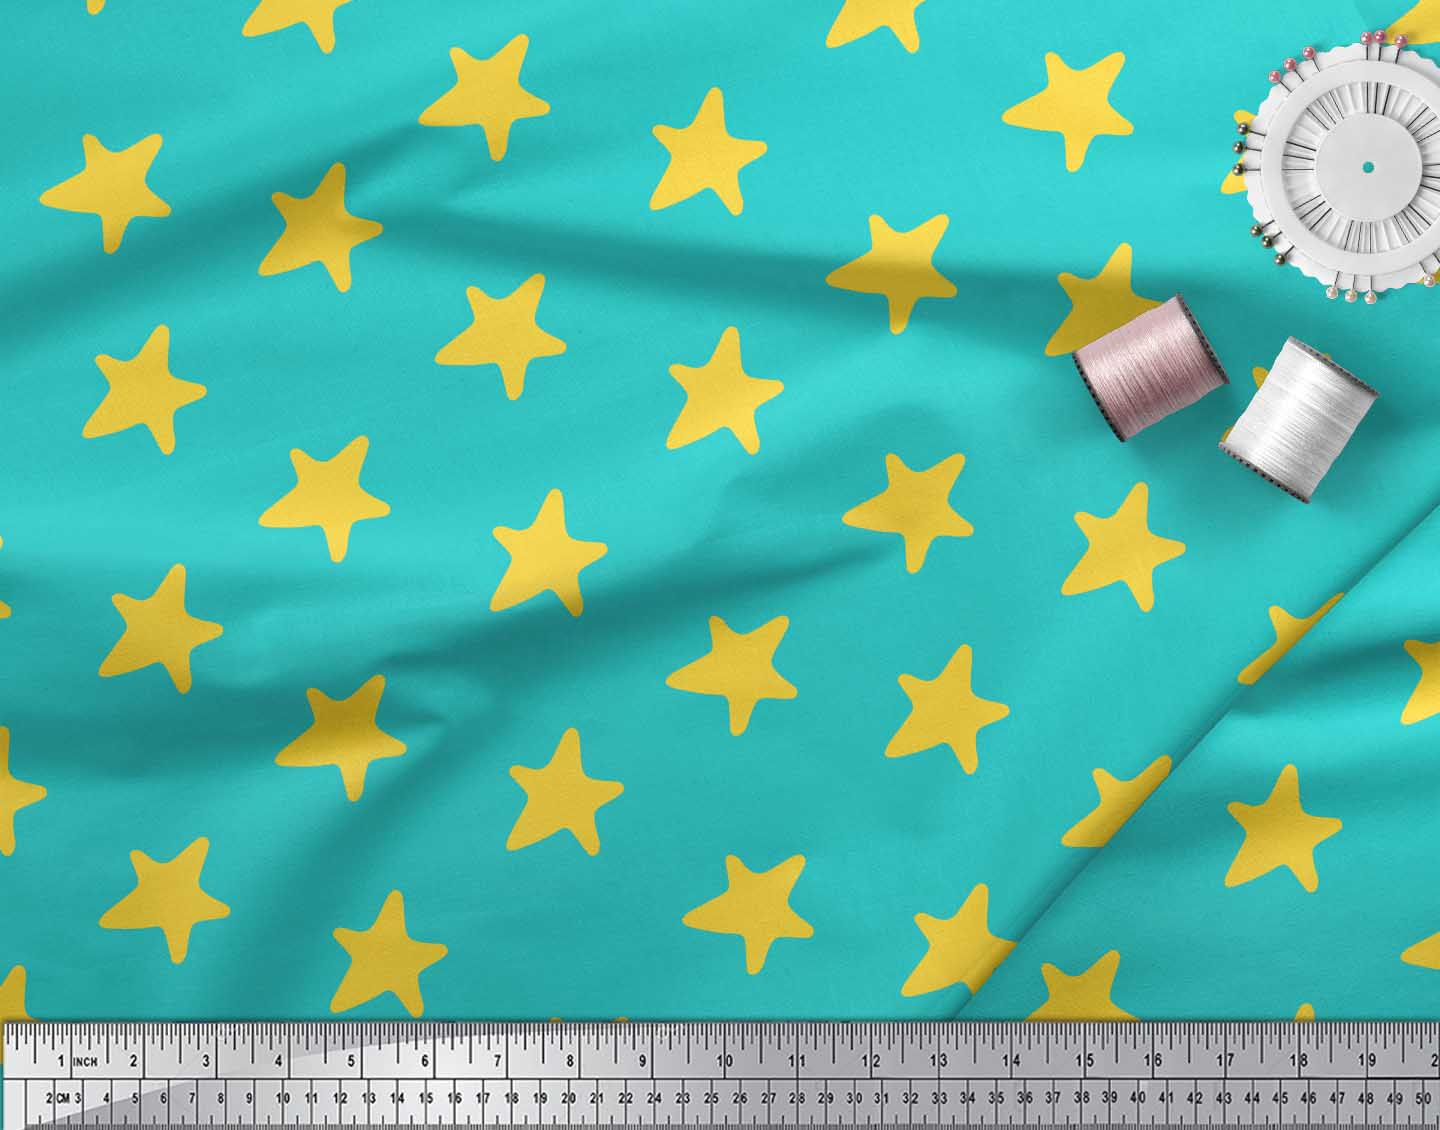 Soimoi-Green-Cotton-Poplin-Fabric-Stars-Star-Fabric-Prints-By-metre-OzA thumbnail 3